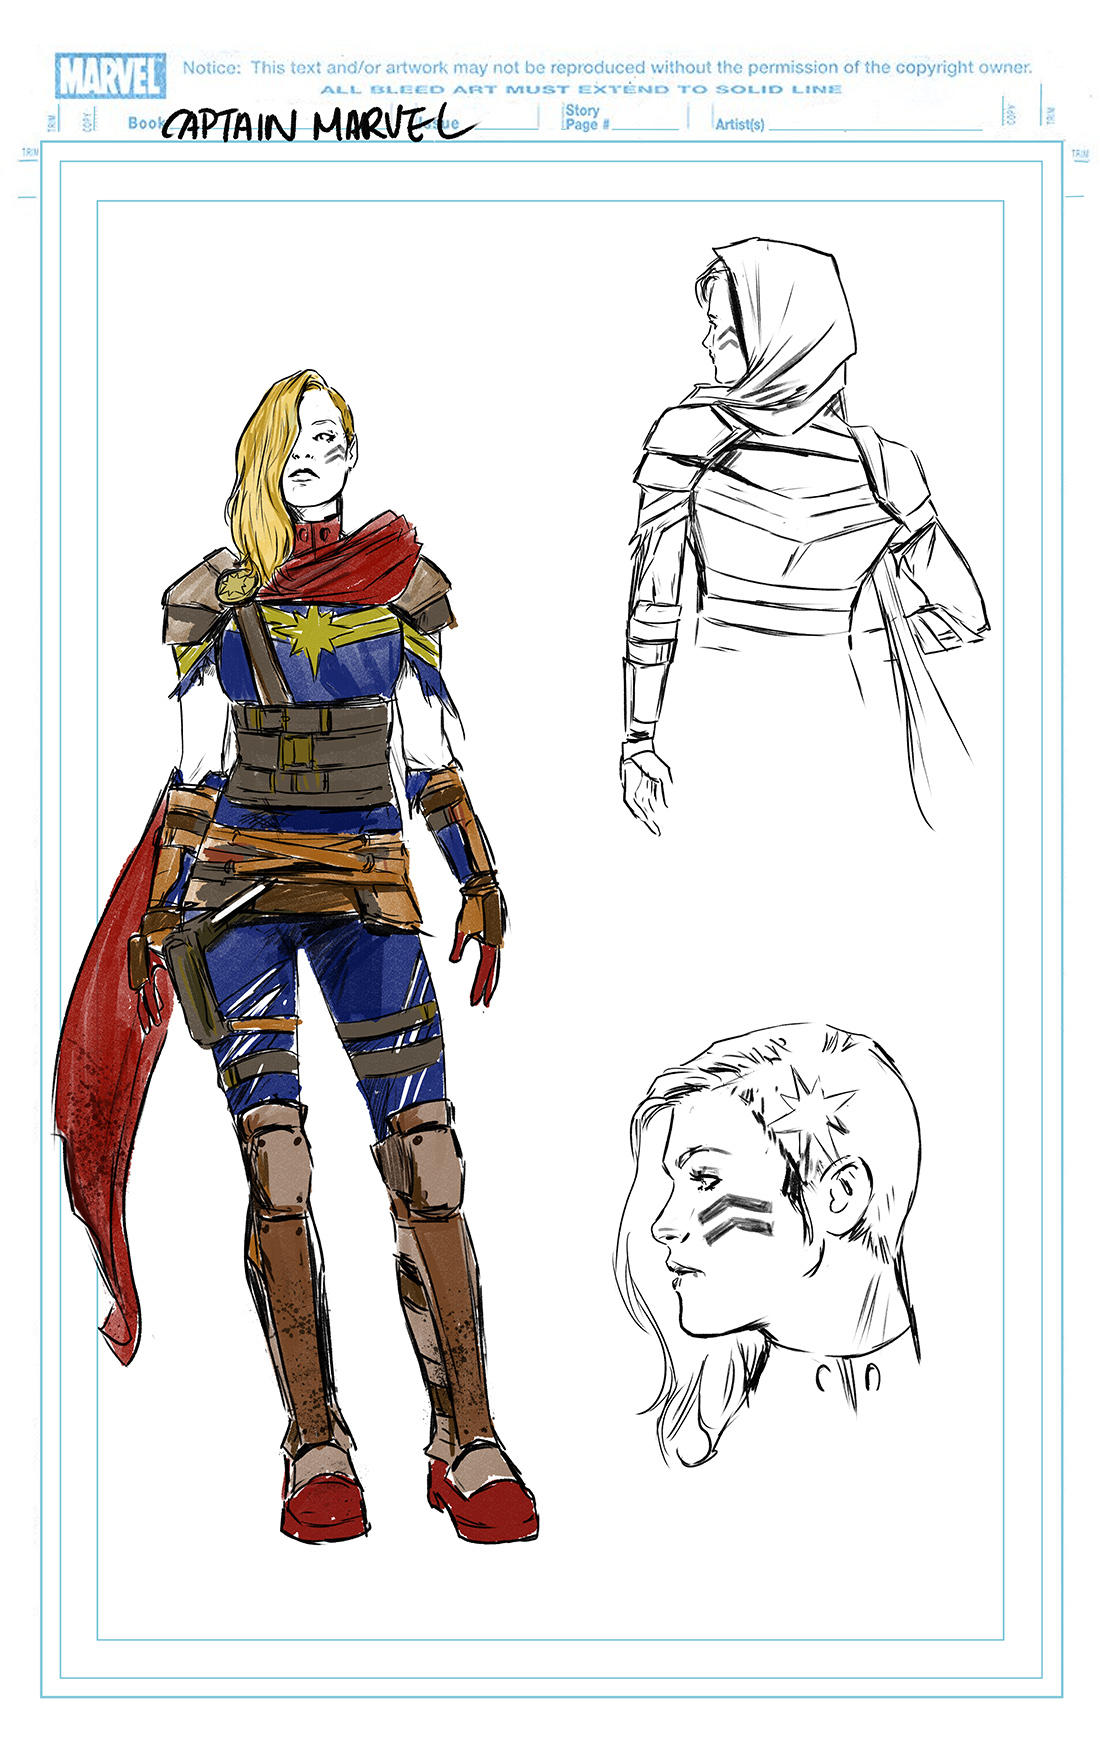 CAPTAIN MARVEL #2: Captain Marvel design by Carmen Carnero